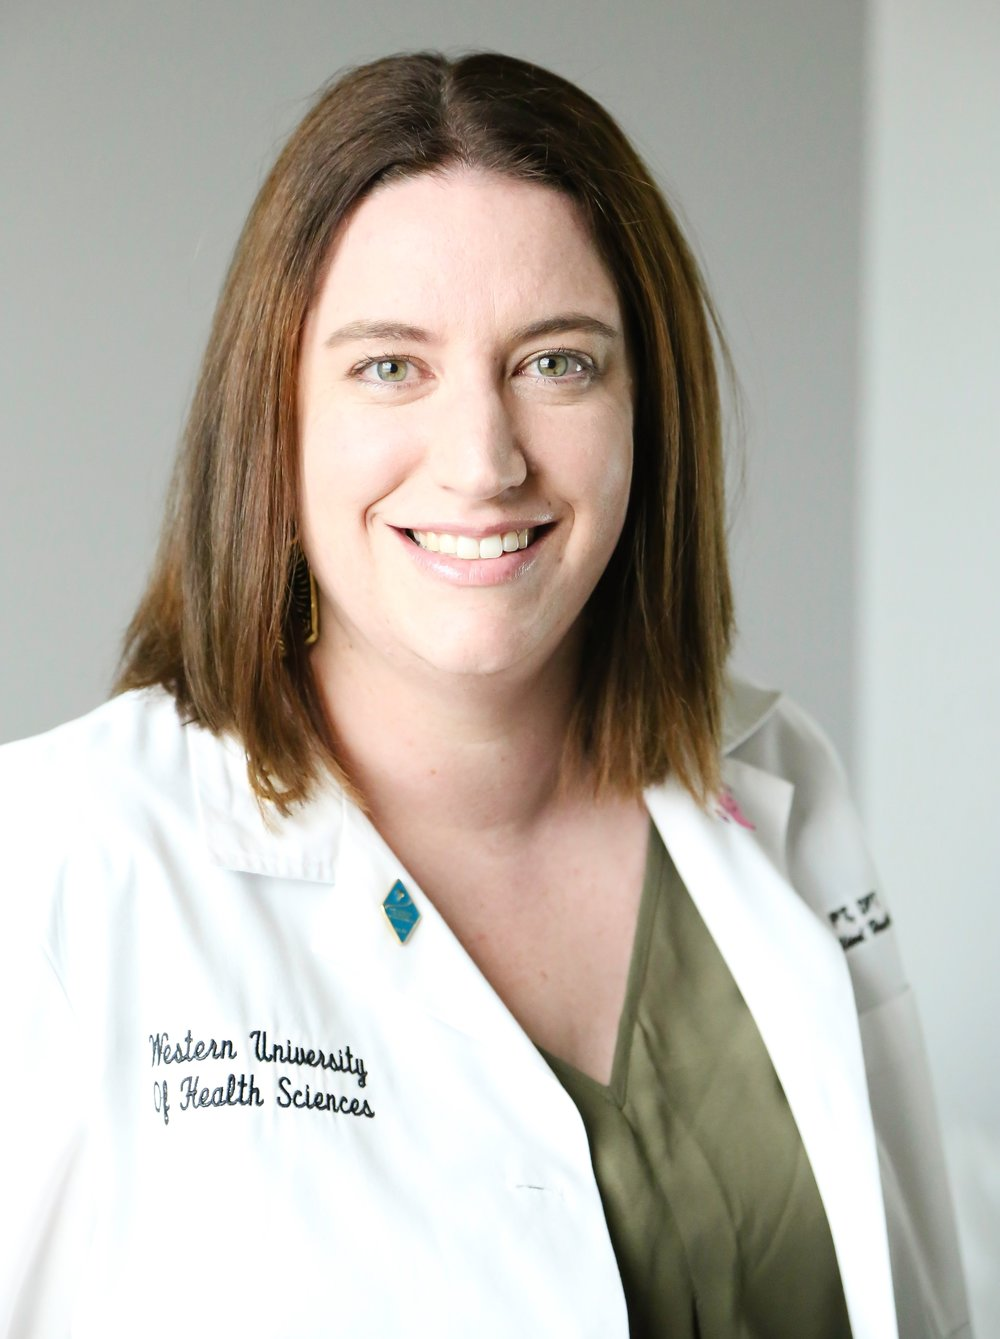 Lindsey Liggan, PT, DPT, WCS, PRPC of Sarton Physical Therapy